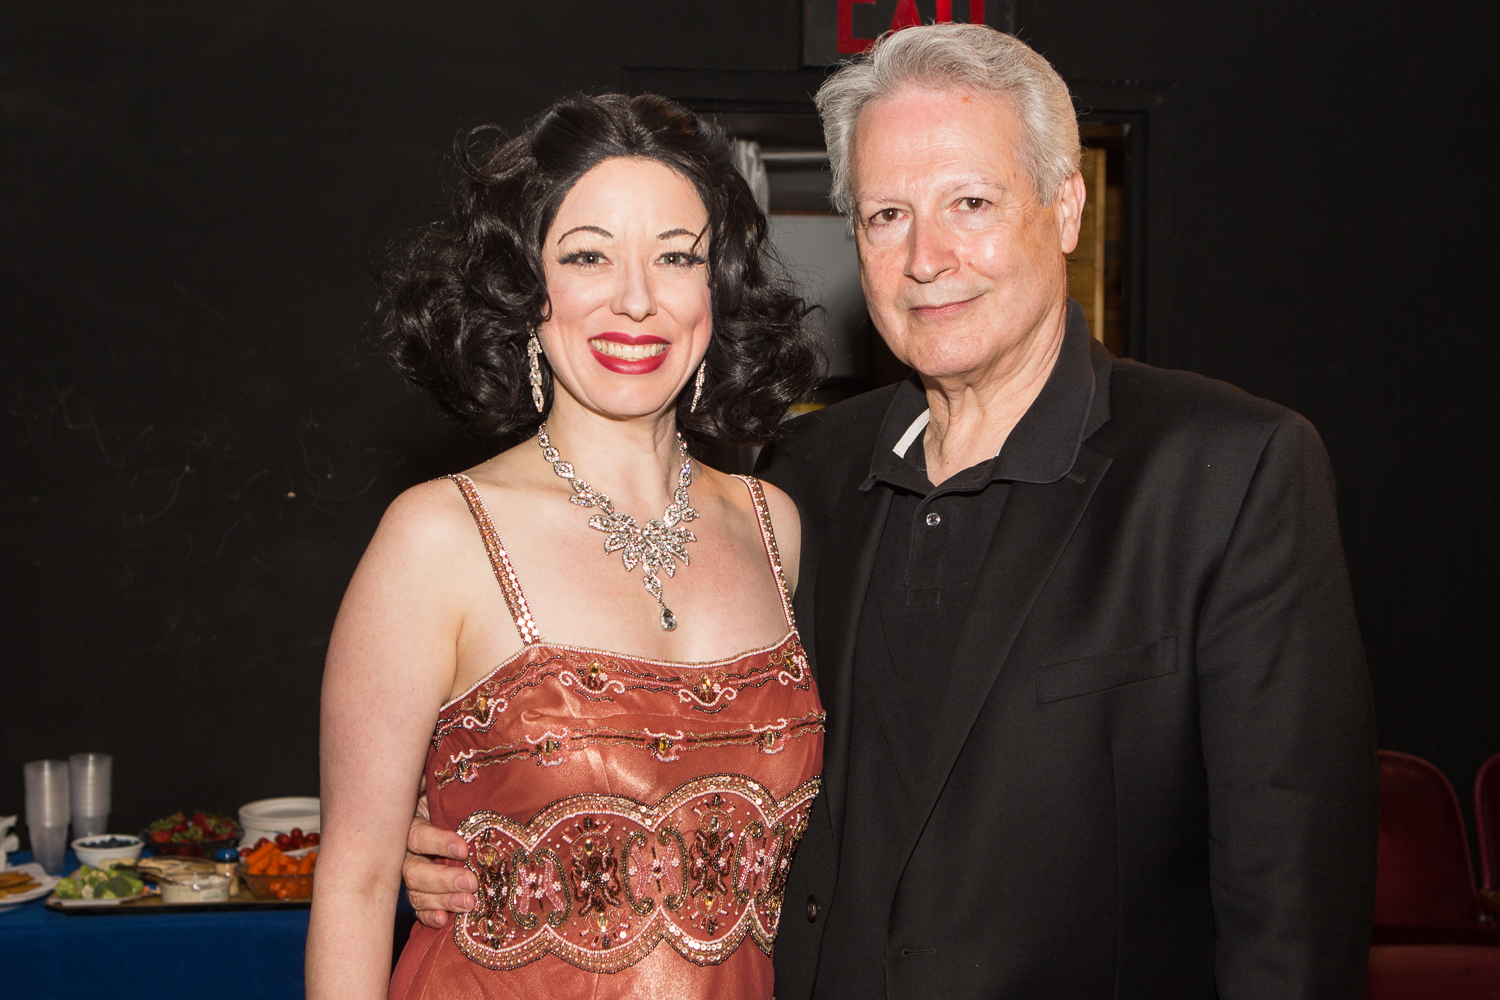 Heather Massie as Hedy Lamarr with Stephen Michael Shearer, Hedy's biographer - Beautiful: The Life of Hedy Lamarr - photo by Al Foote III